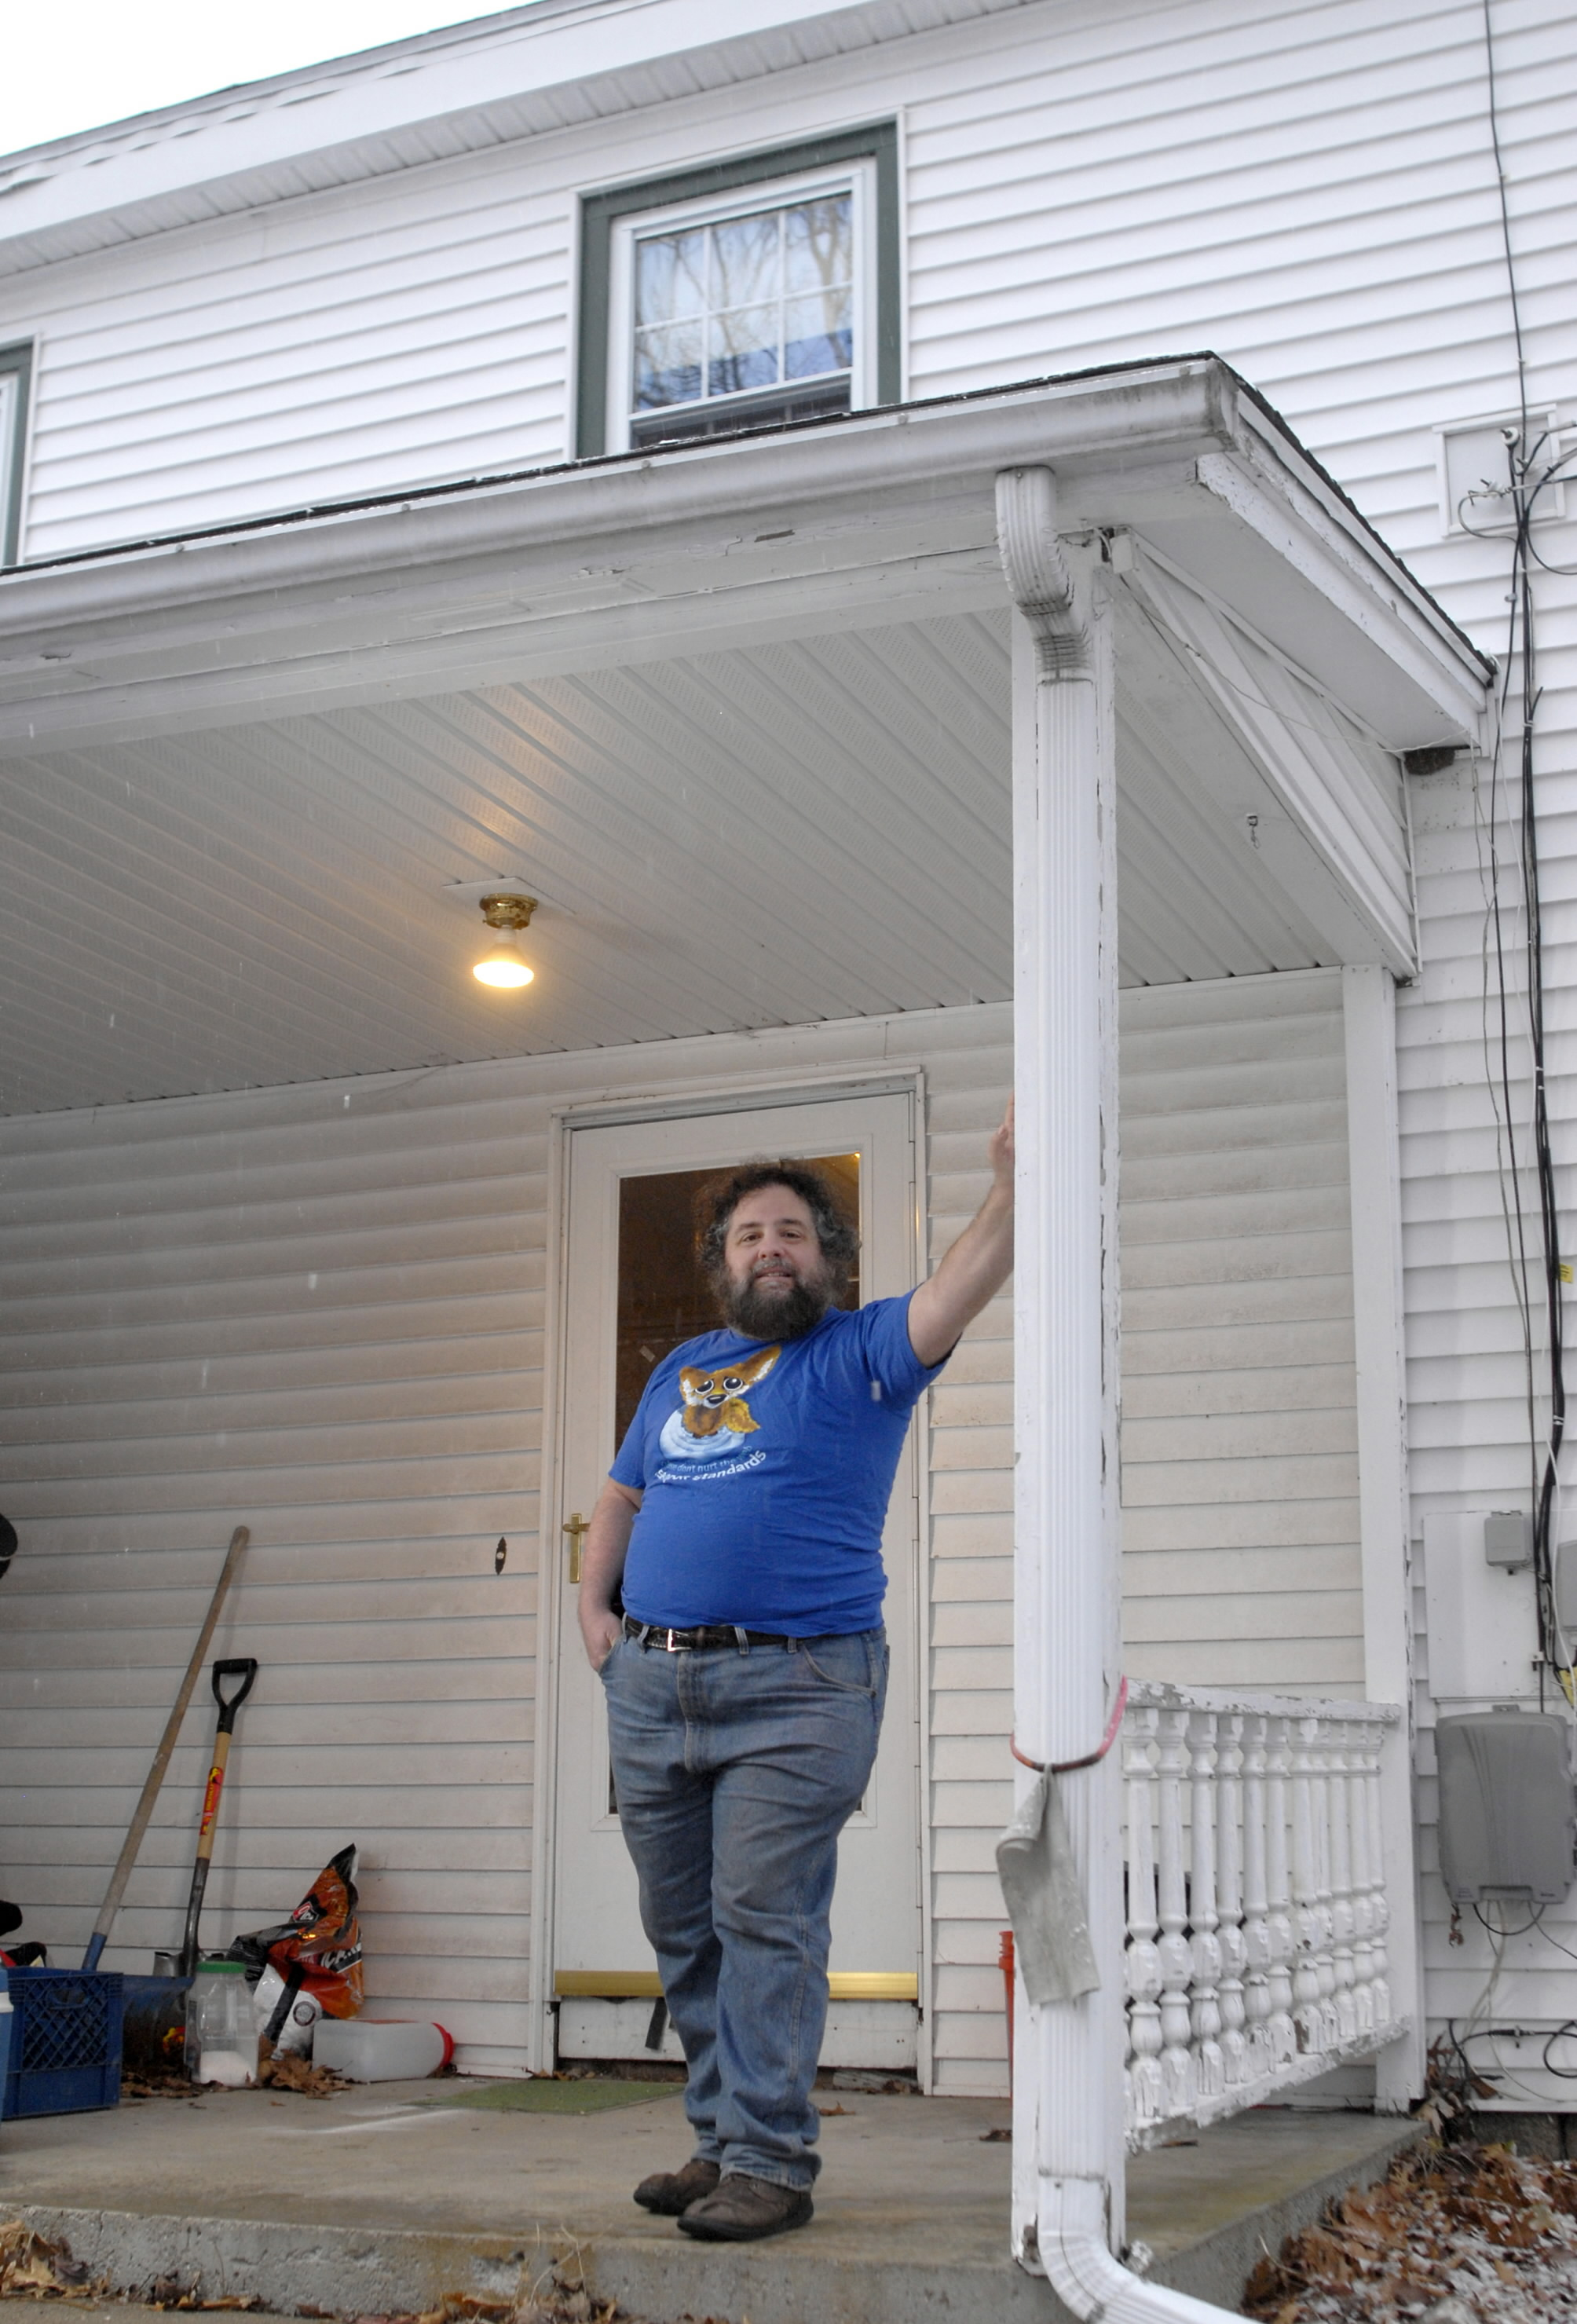 Author James Turner stands in front of his 1796 farmhouse in Derry, New Hampshire. Turner insulated his home with polyurethane hard cell insulation th...